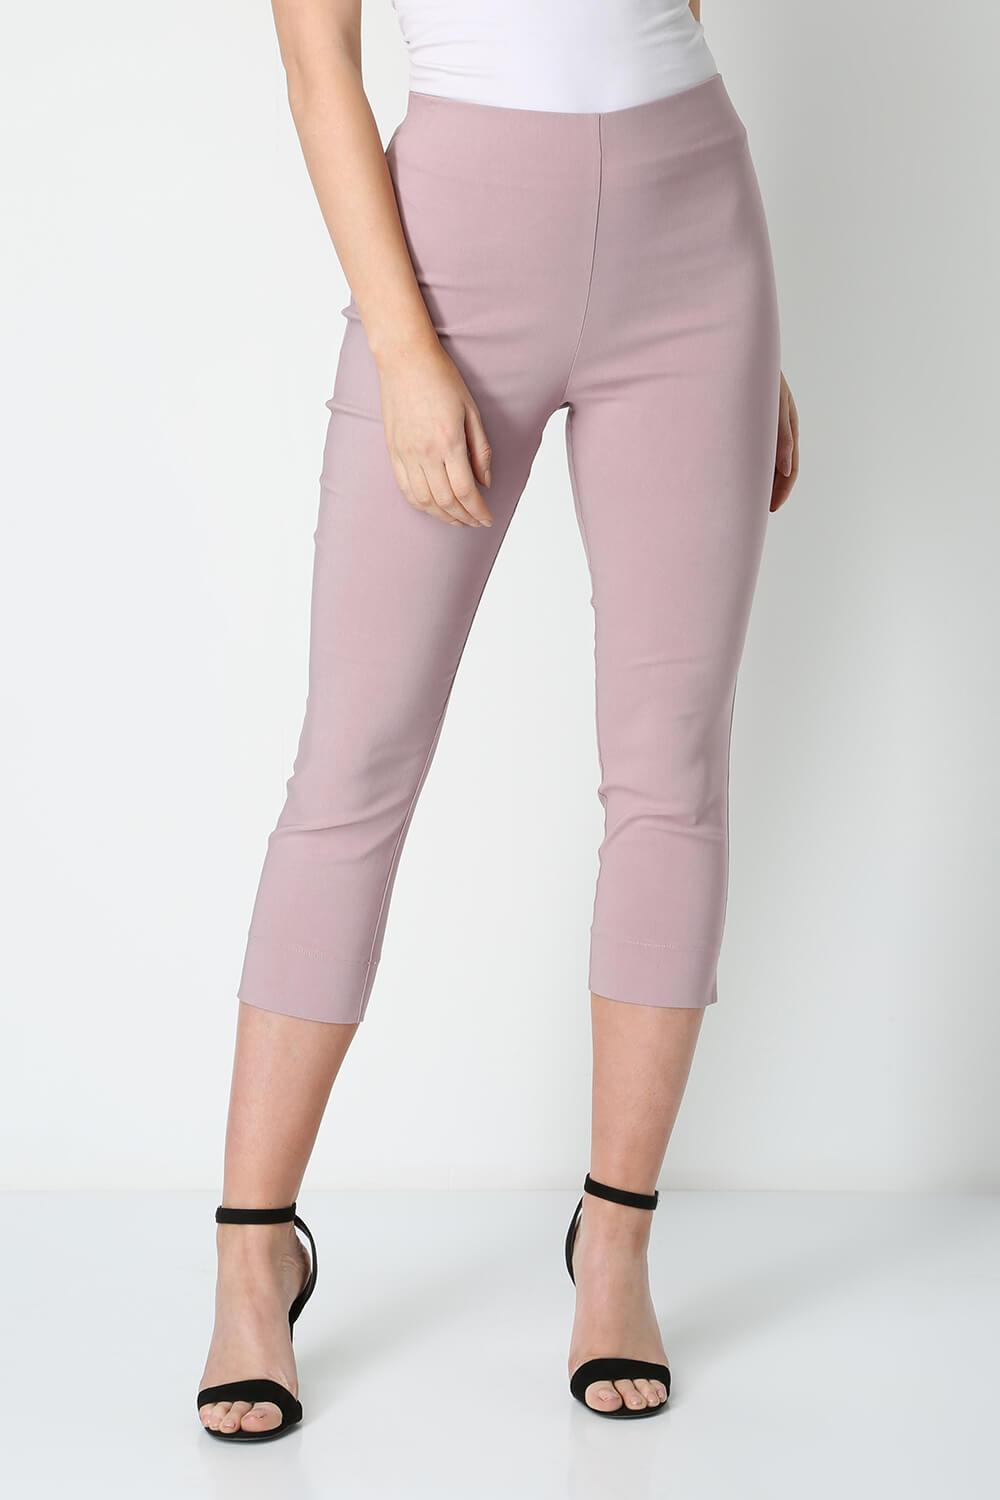 Roman-Originals-Women-Cropped-Stretch-Bengaline-Capri-Trousers-3-4-Thick-Legging 縮圖 142